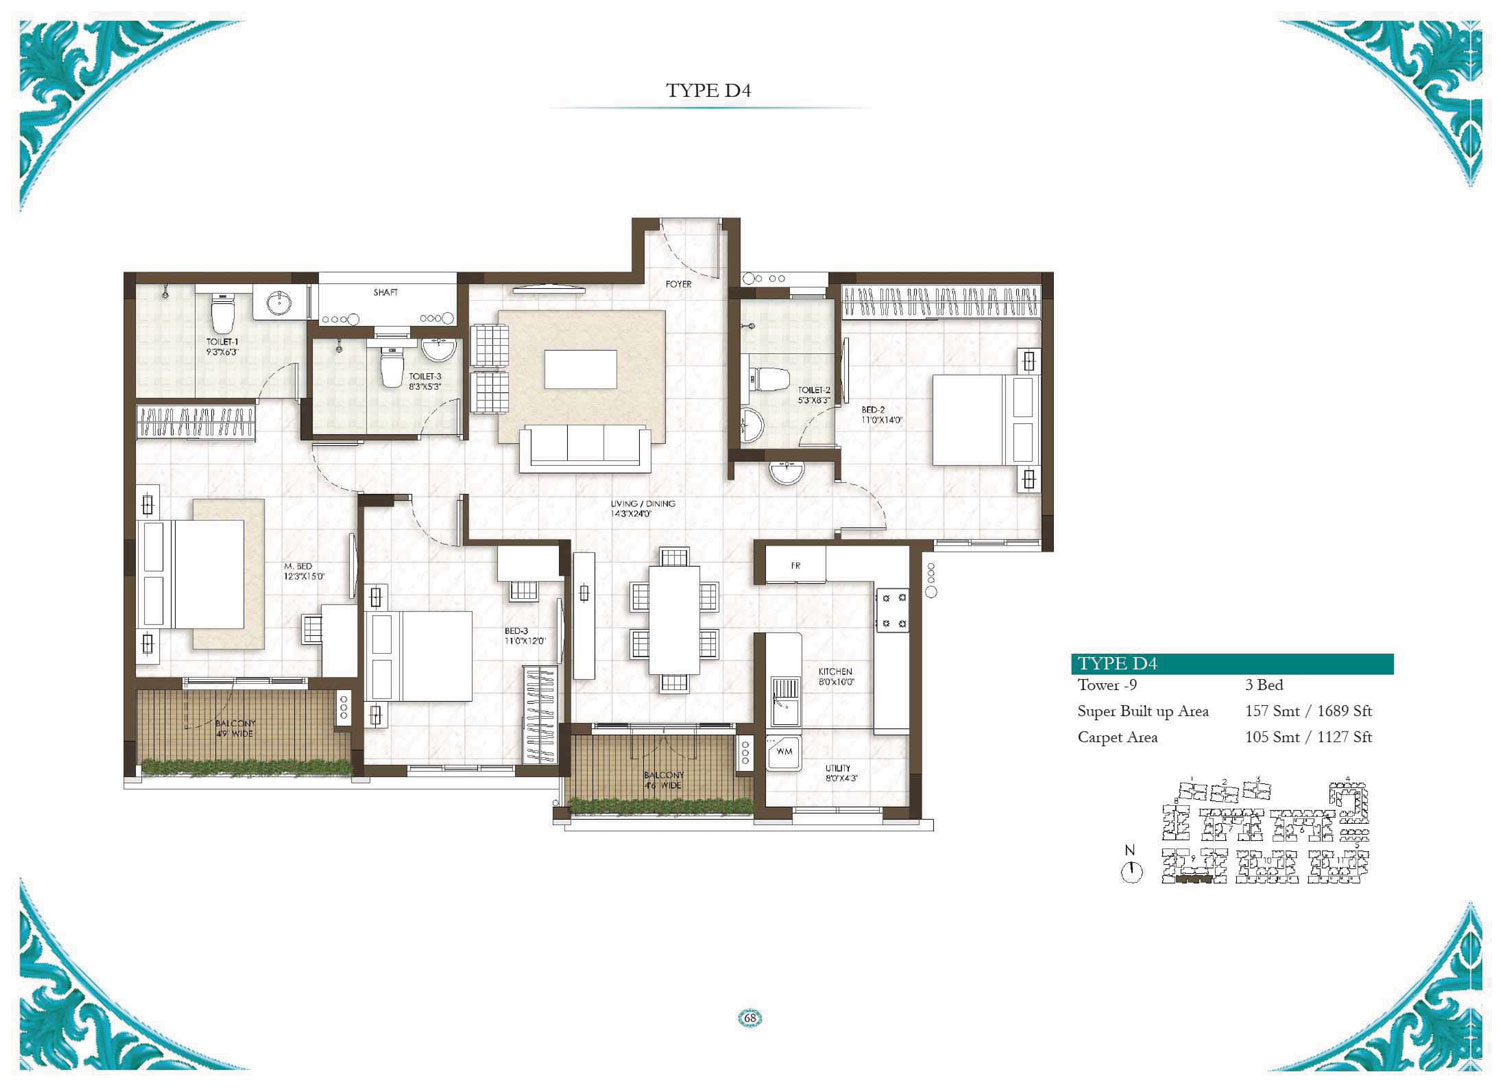 Type D4 - 3 Bed - 1689 Sq Ft